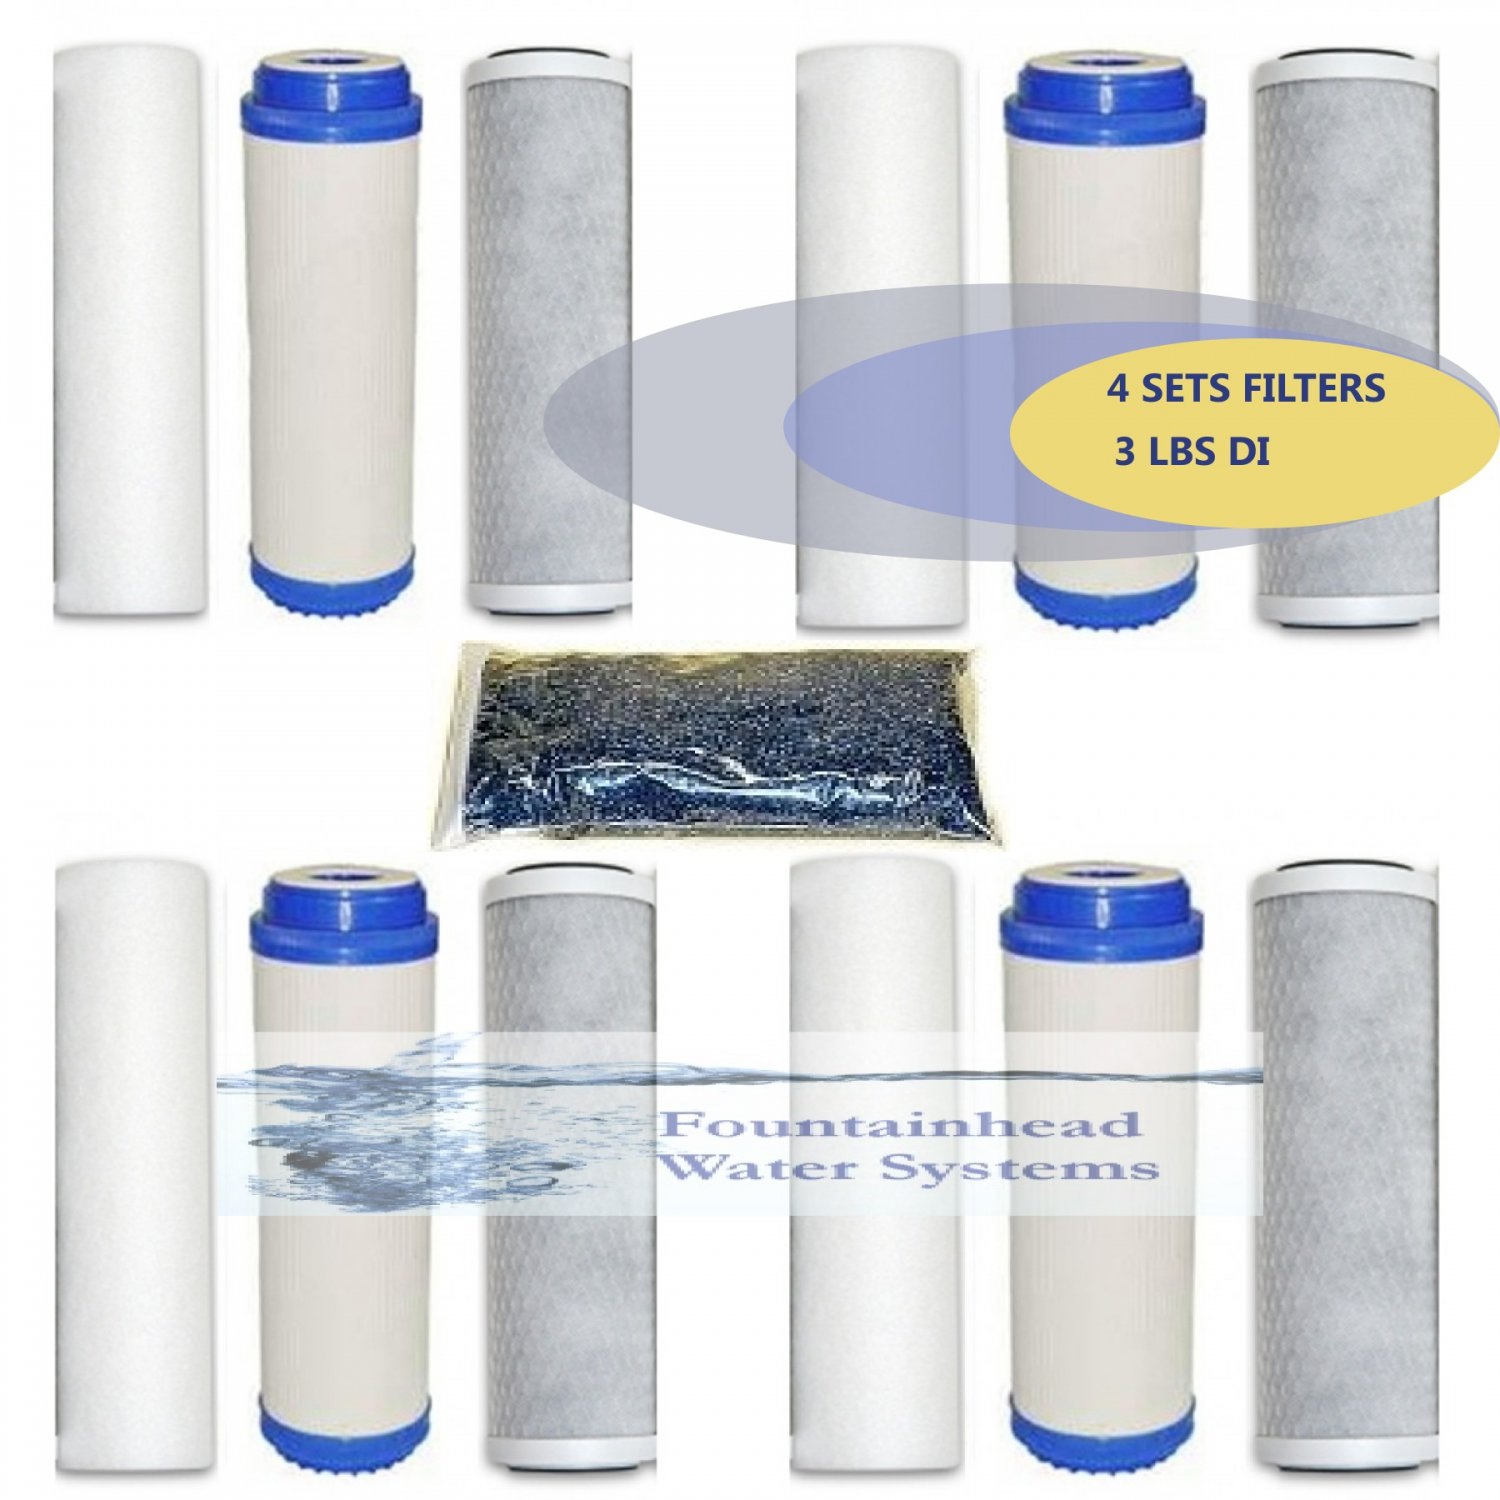 RO/DI MEDIA. 5 MICRON 4 SETS FILTERS. 3 LBS COLOR CHANGING DI. AQUARIUM/REEF